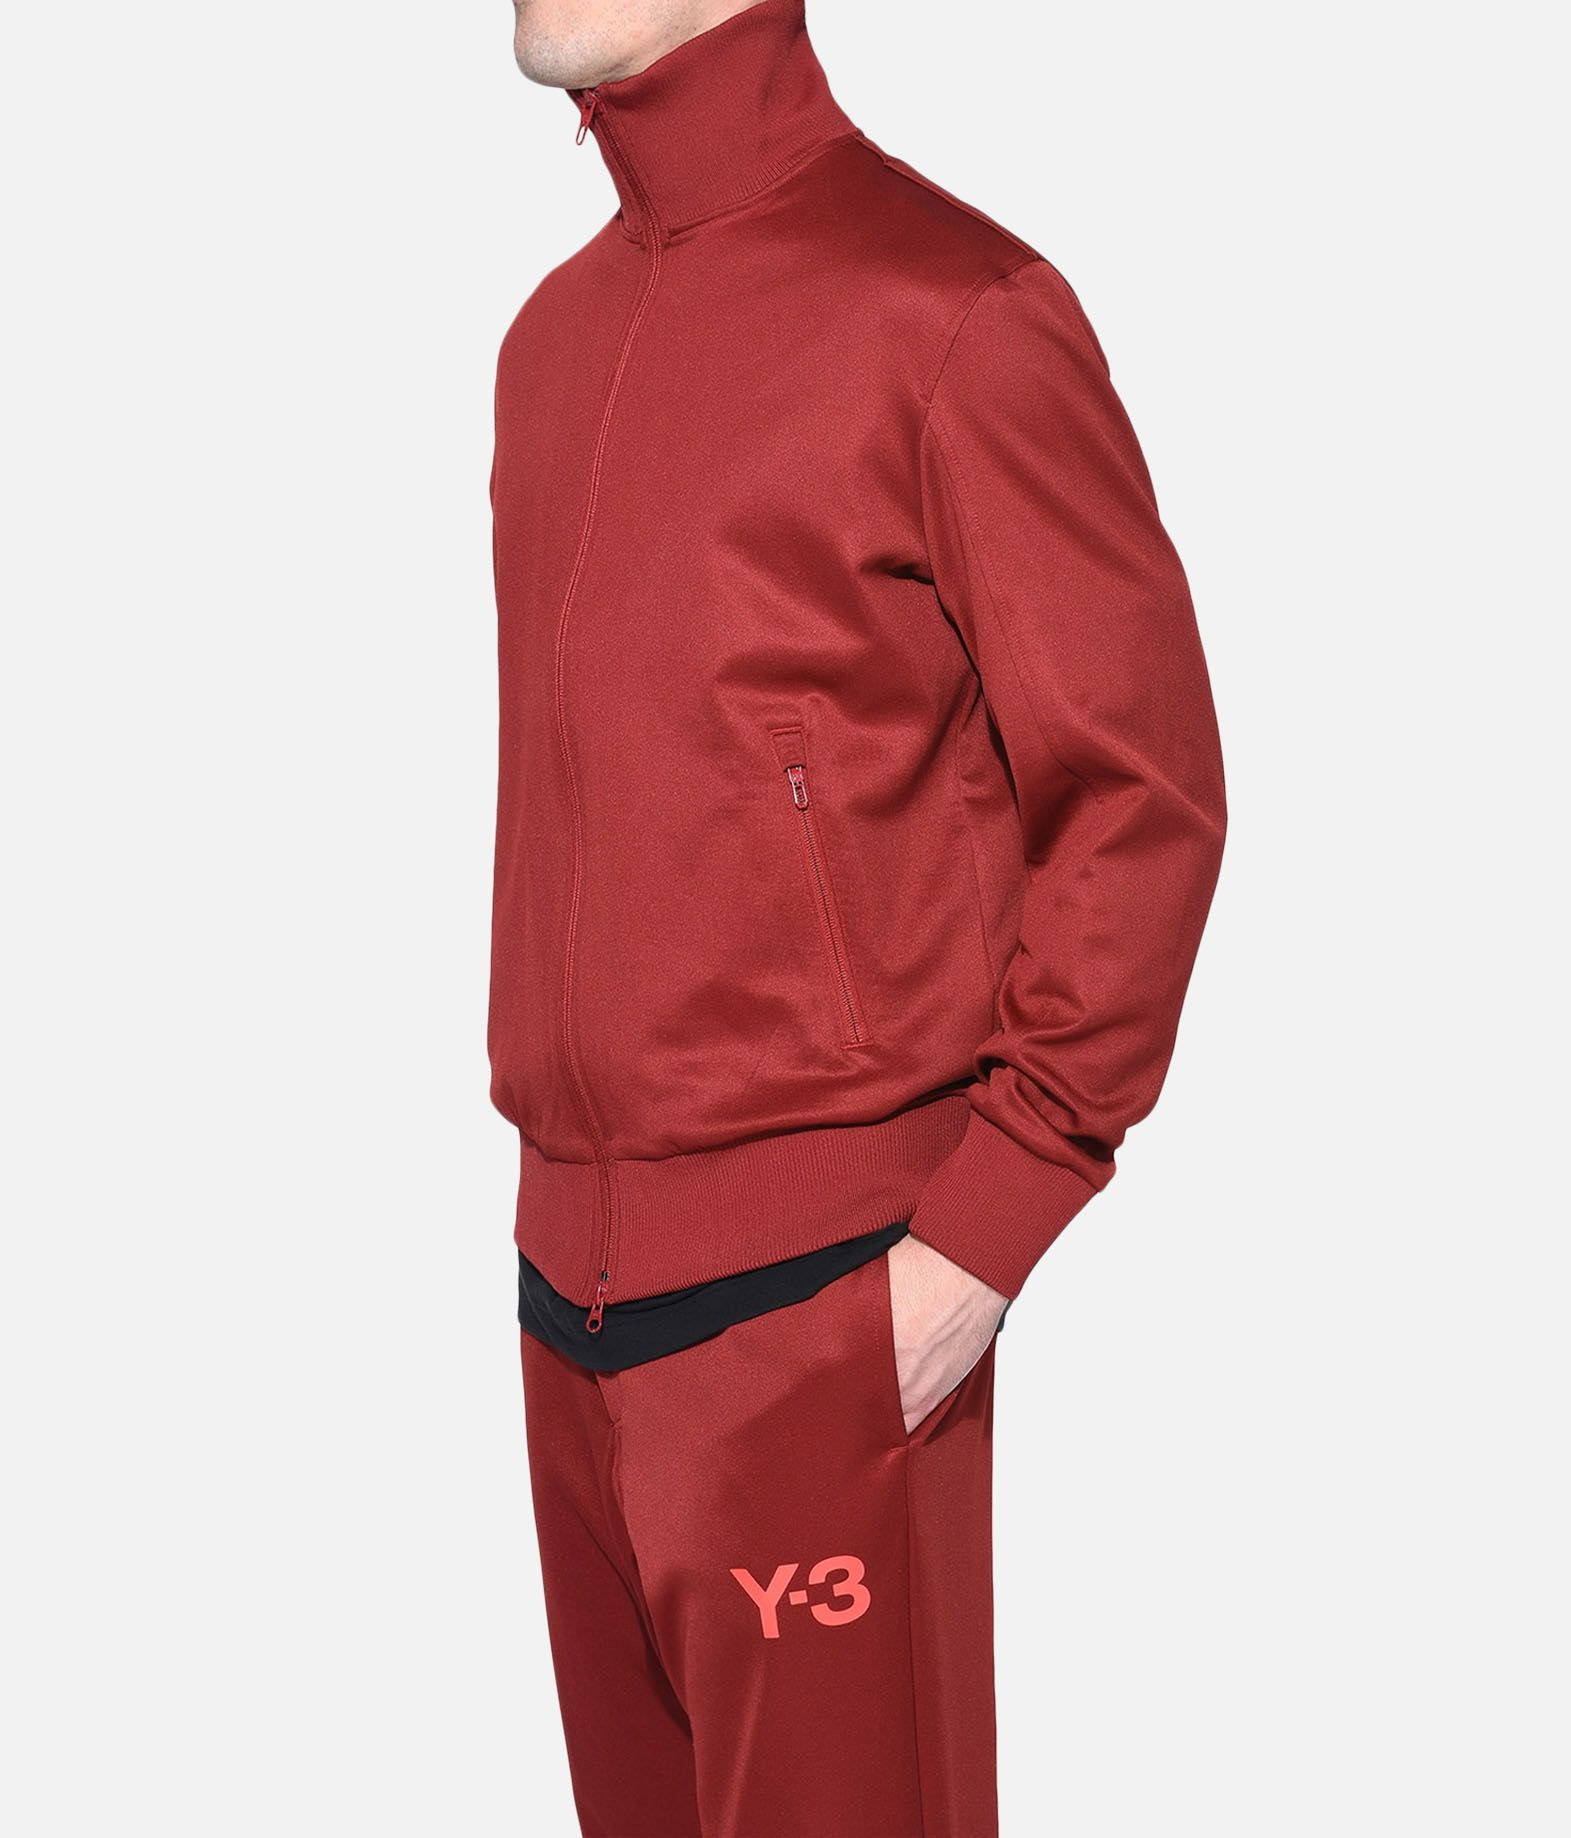 Y-3 Y-3 Classic Track Jacket Track top Herren e